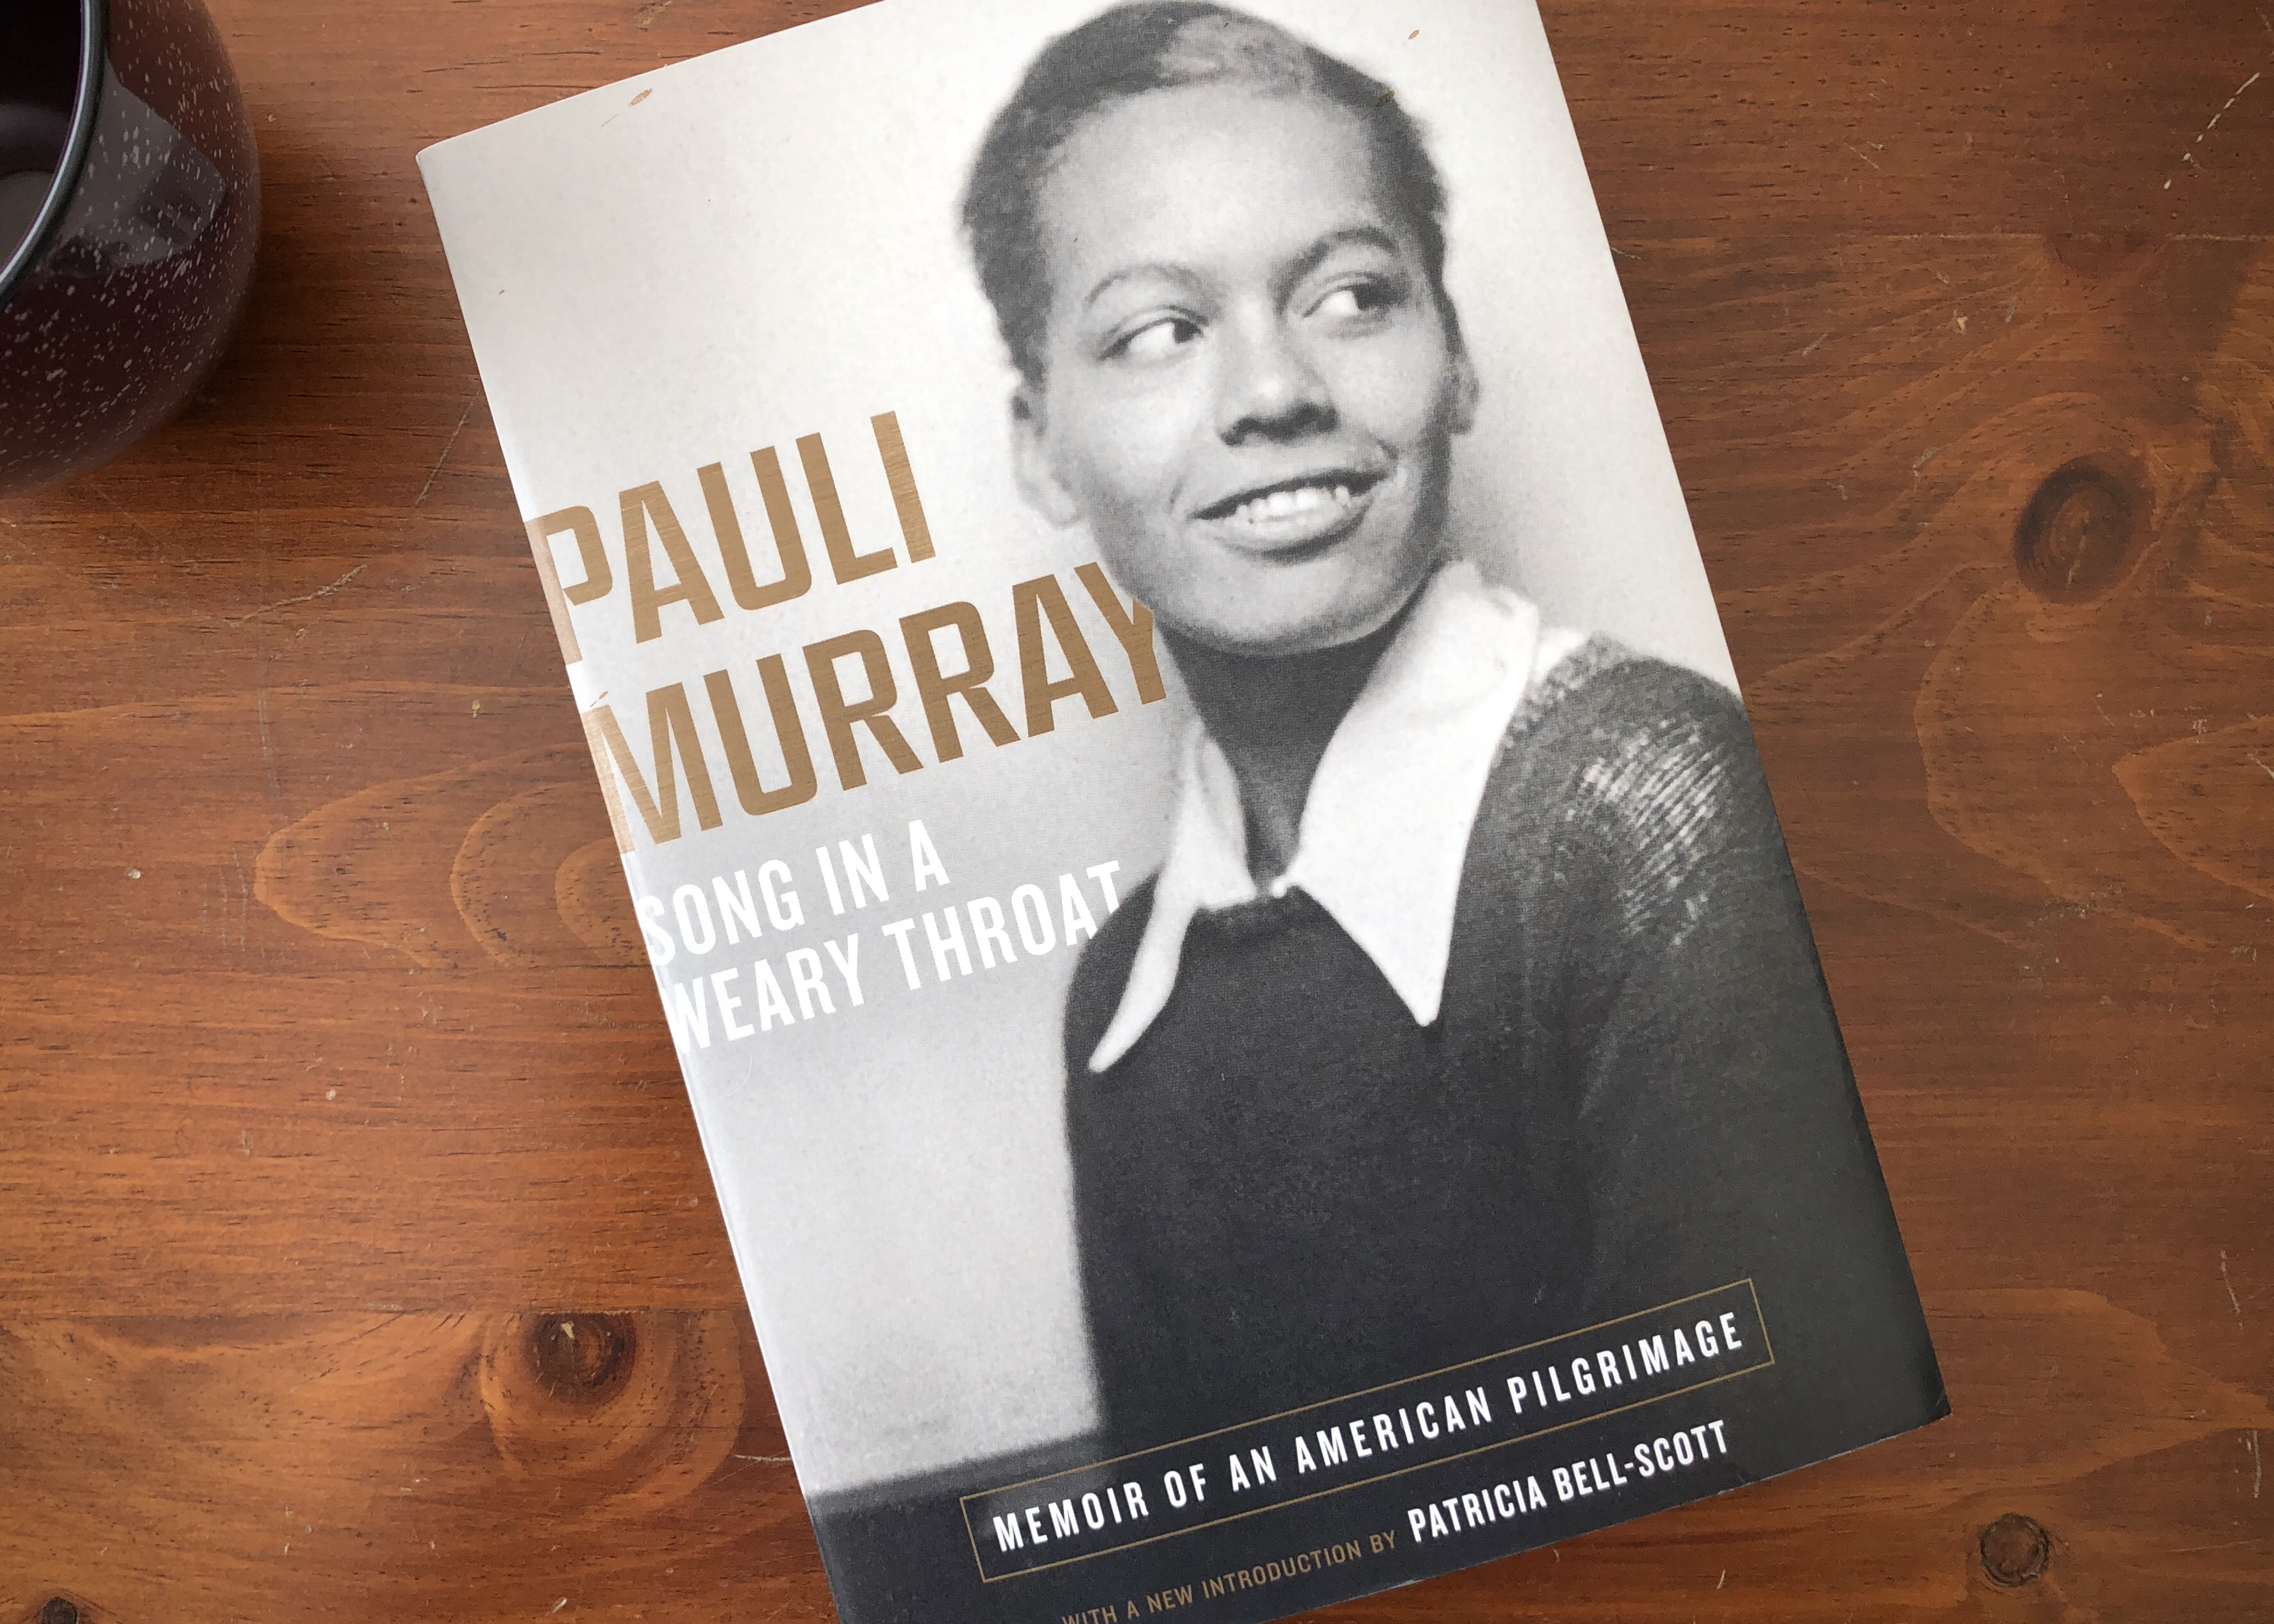 Cover of Pauli Murray's memoir Song in a Weary Throat